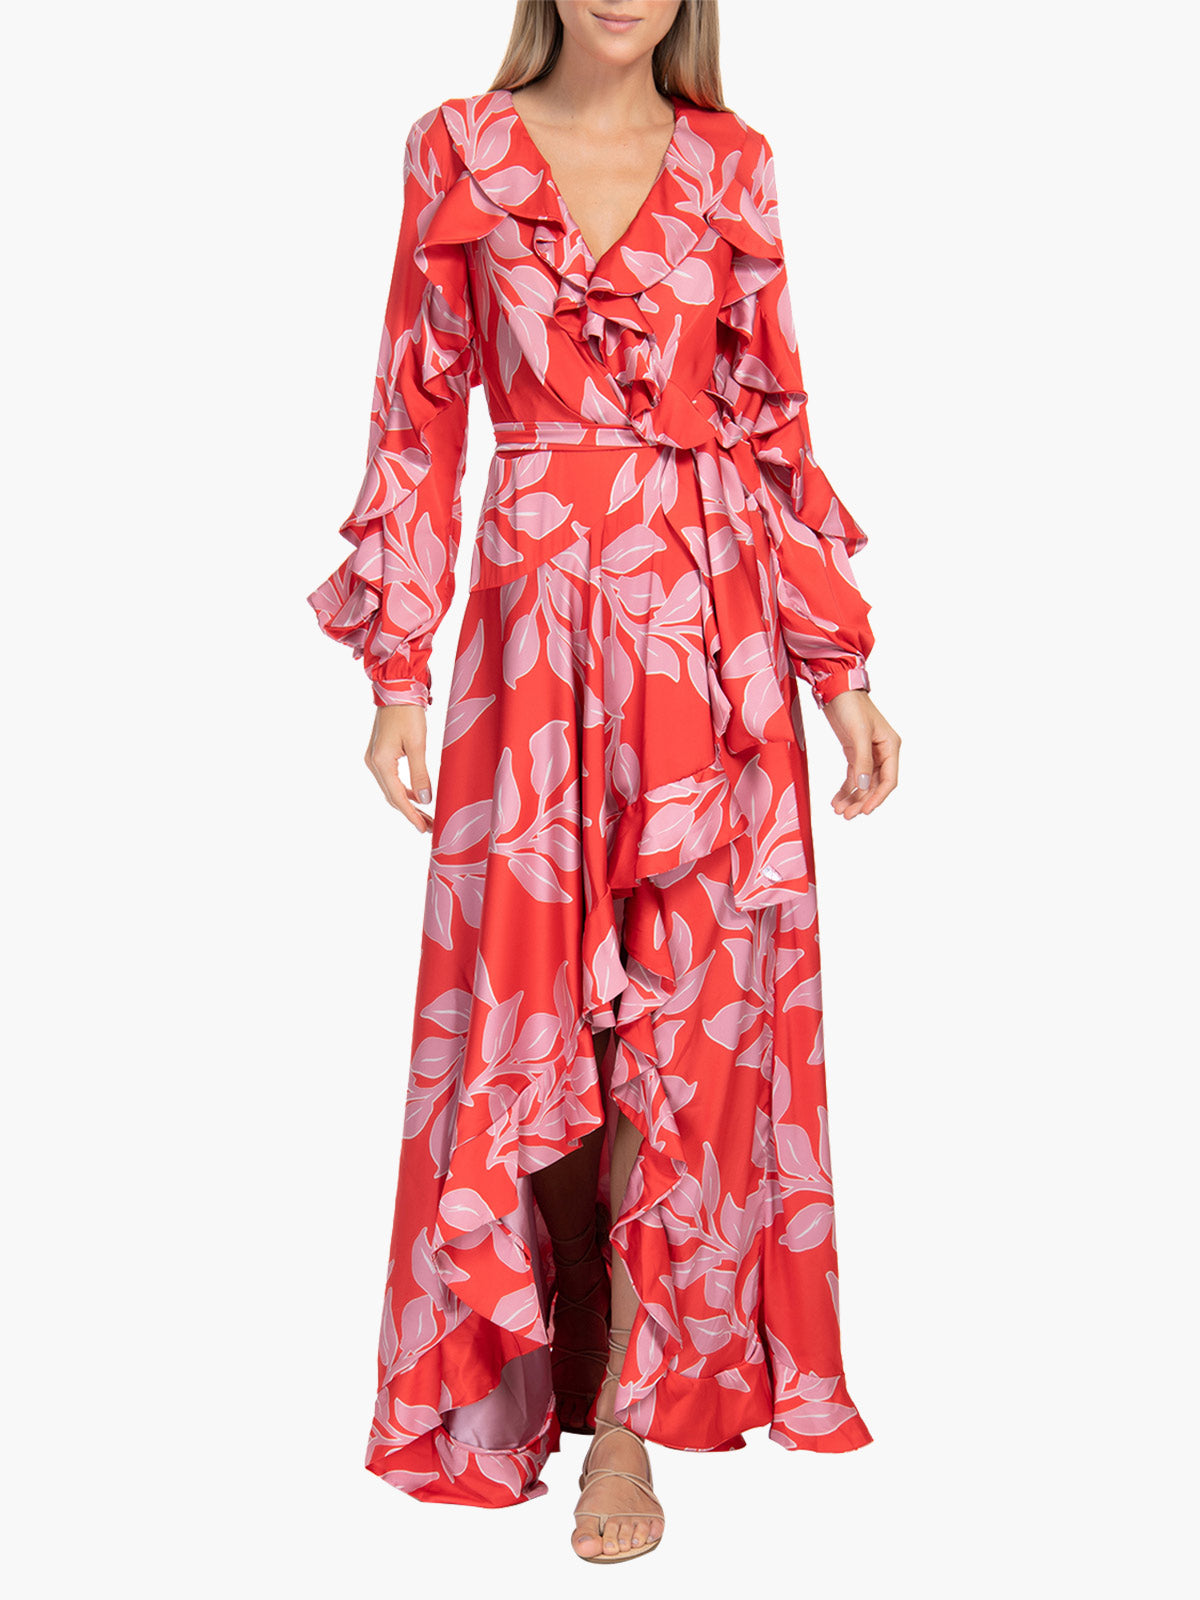 Ruffle Sleeve Maxi Dress | Leaf Print Ruffle Sleeve Maxi Dress | Leaf Print